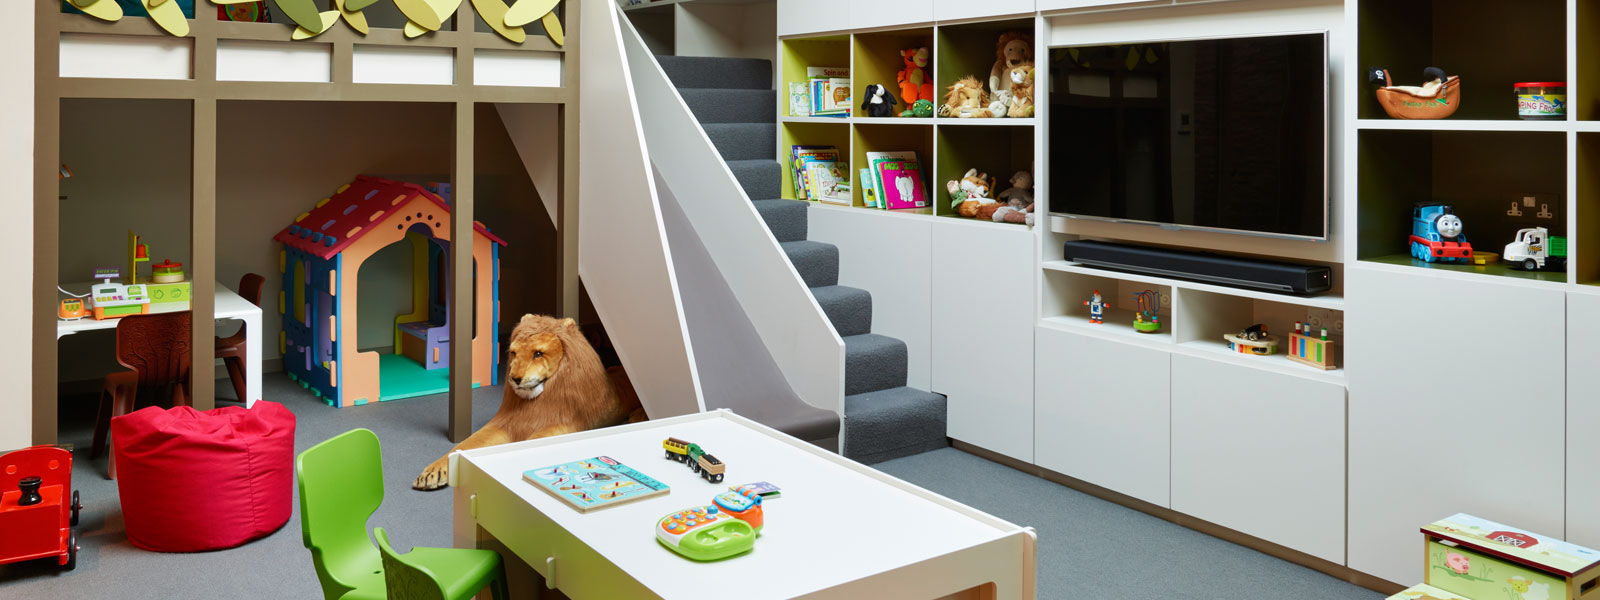 Ensoul under garden basement playroom mezzanine kids spaces